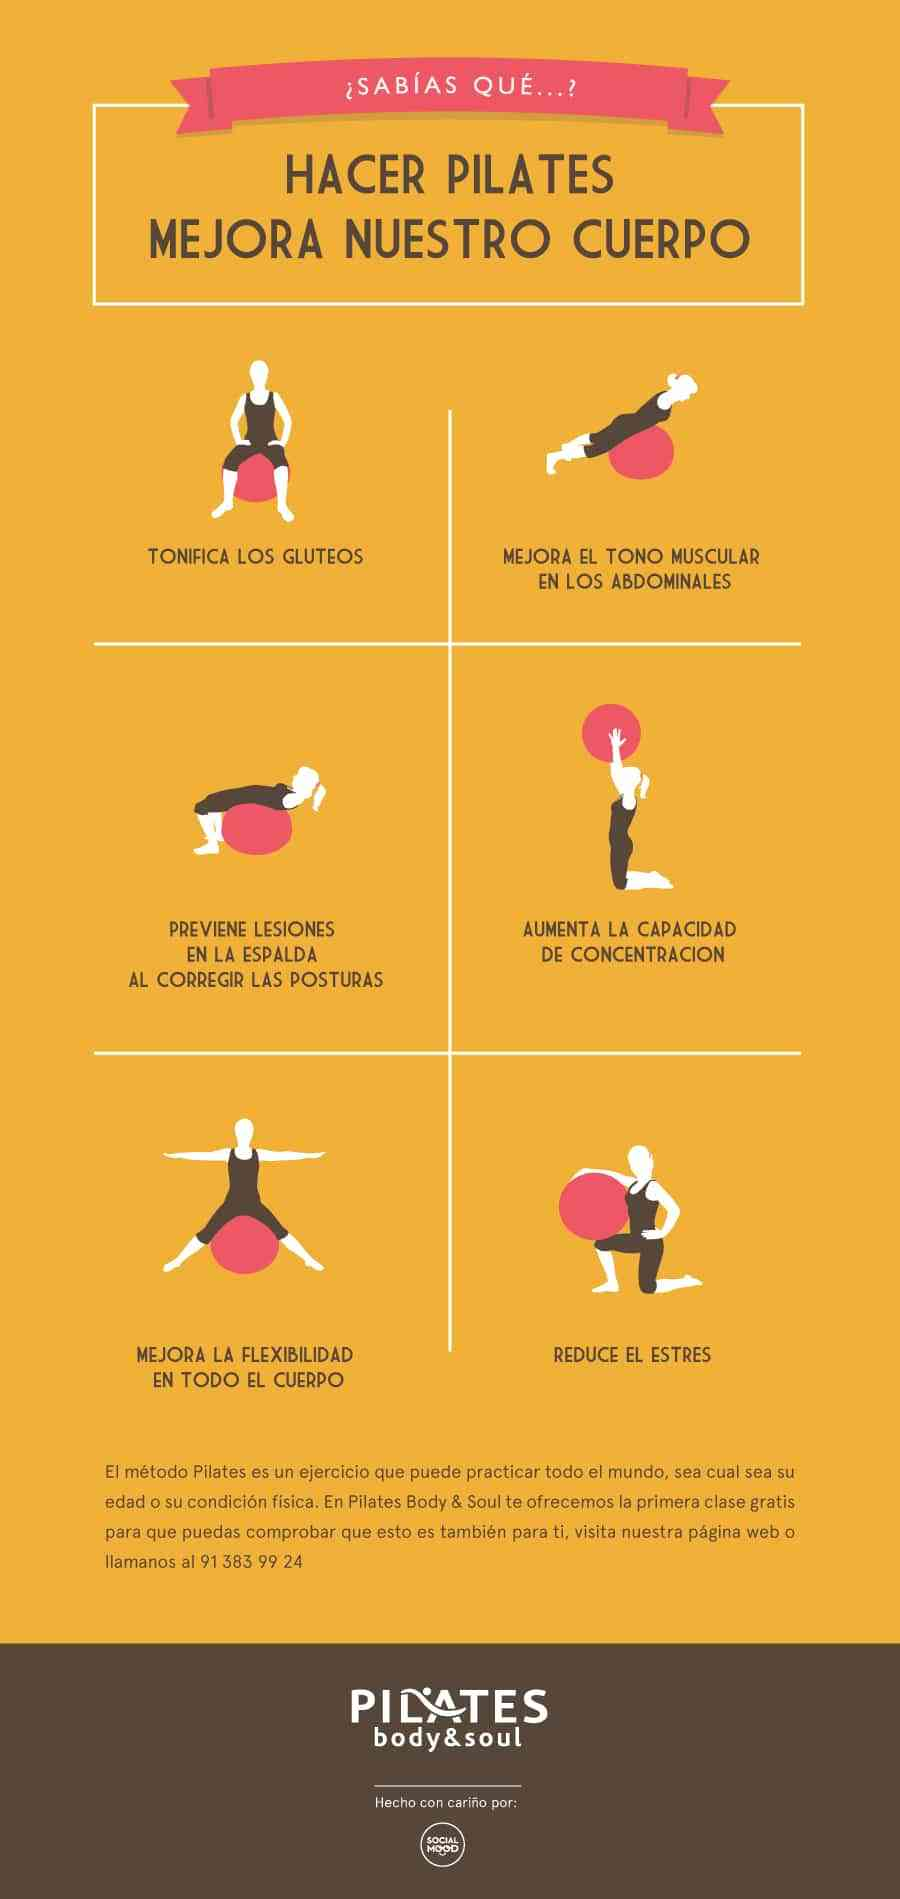 los beneficios de practicar pilates